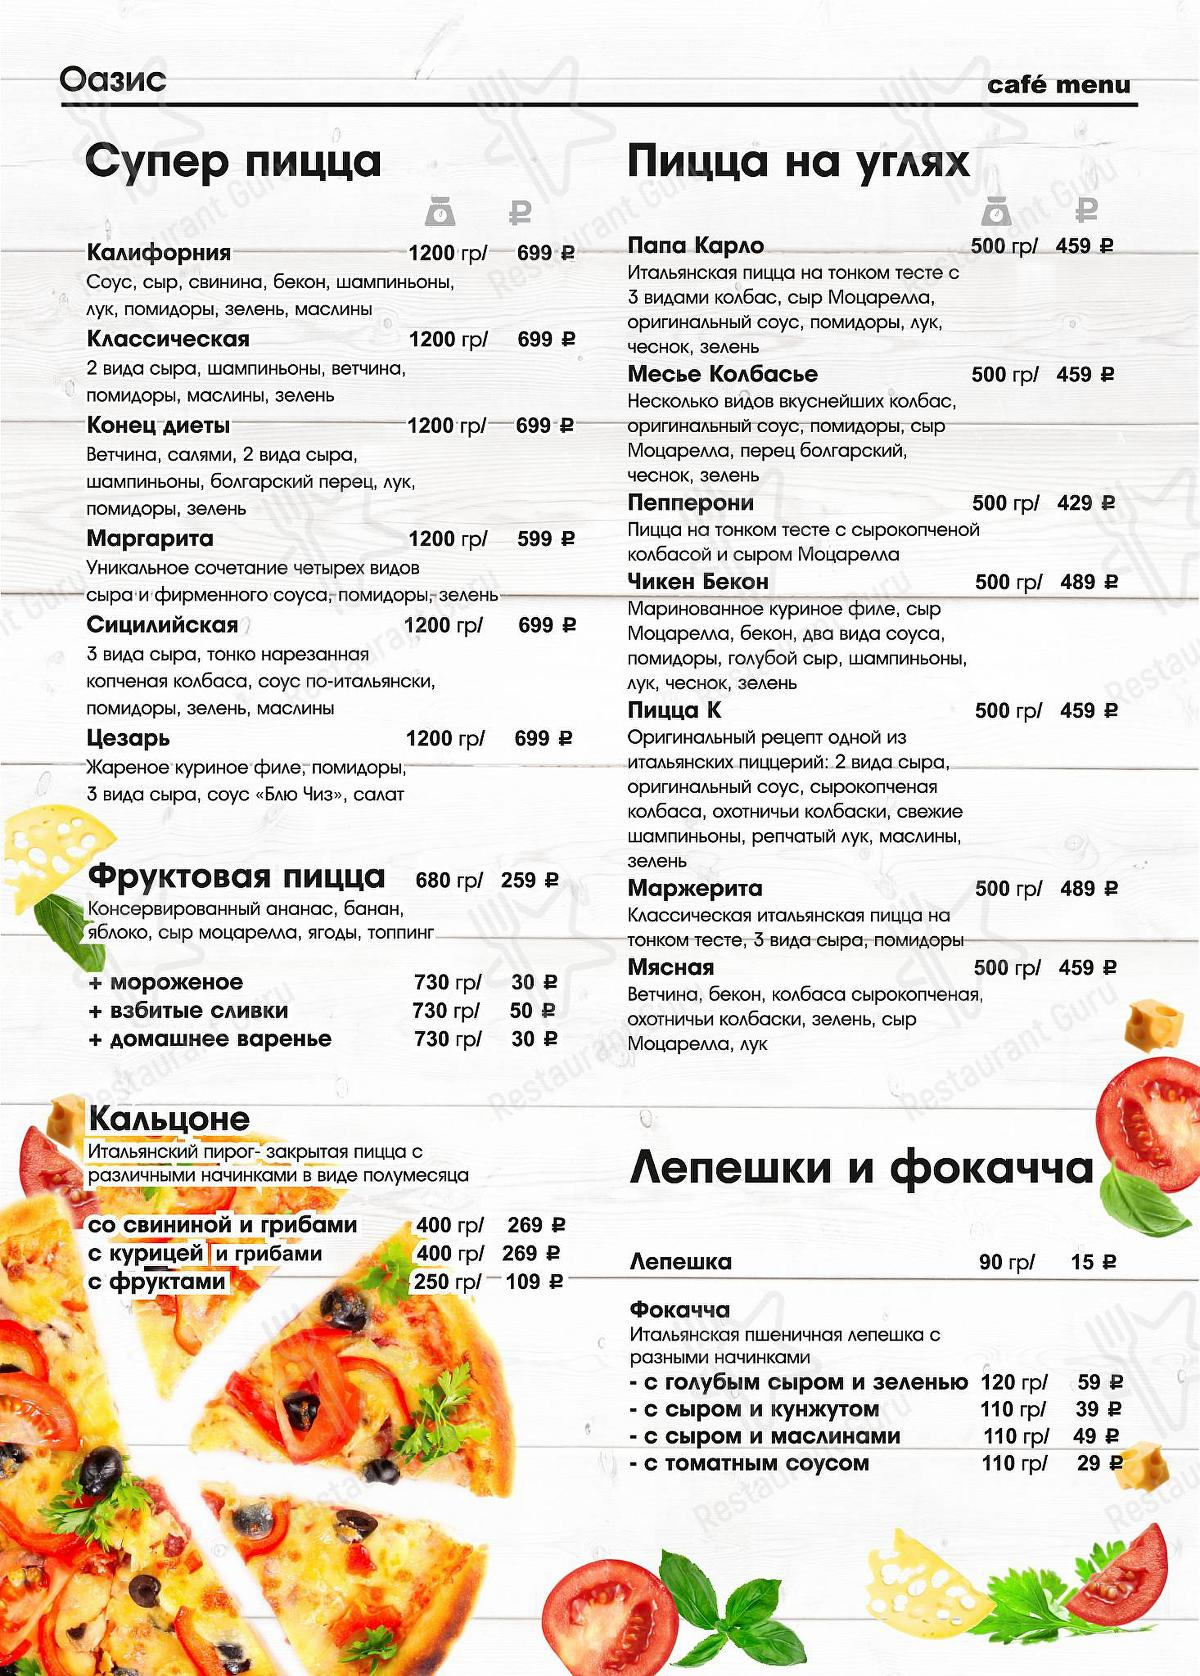 Check out the menu for Оазис